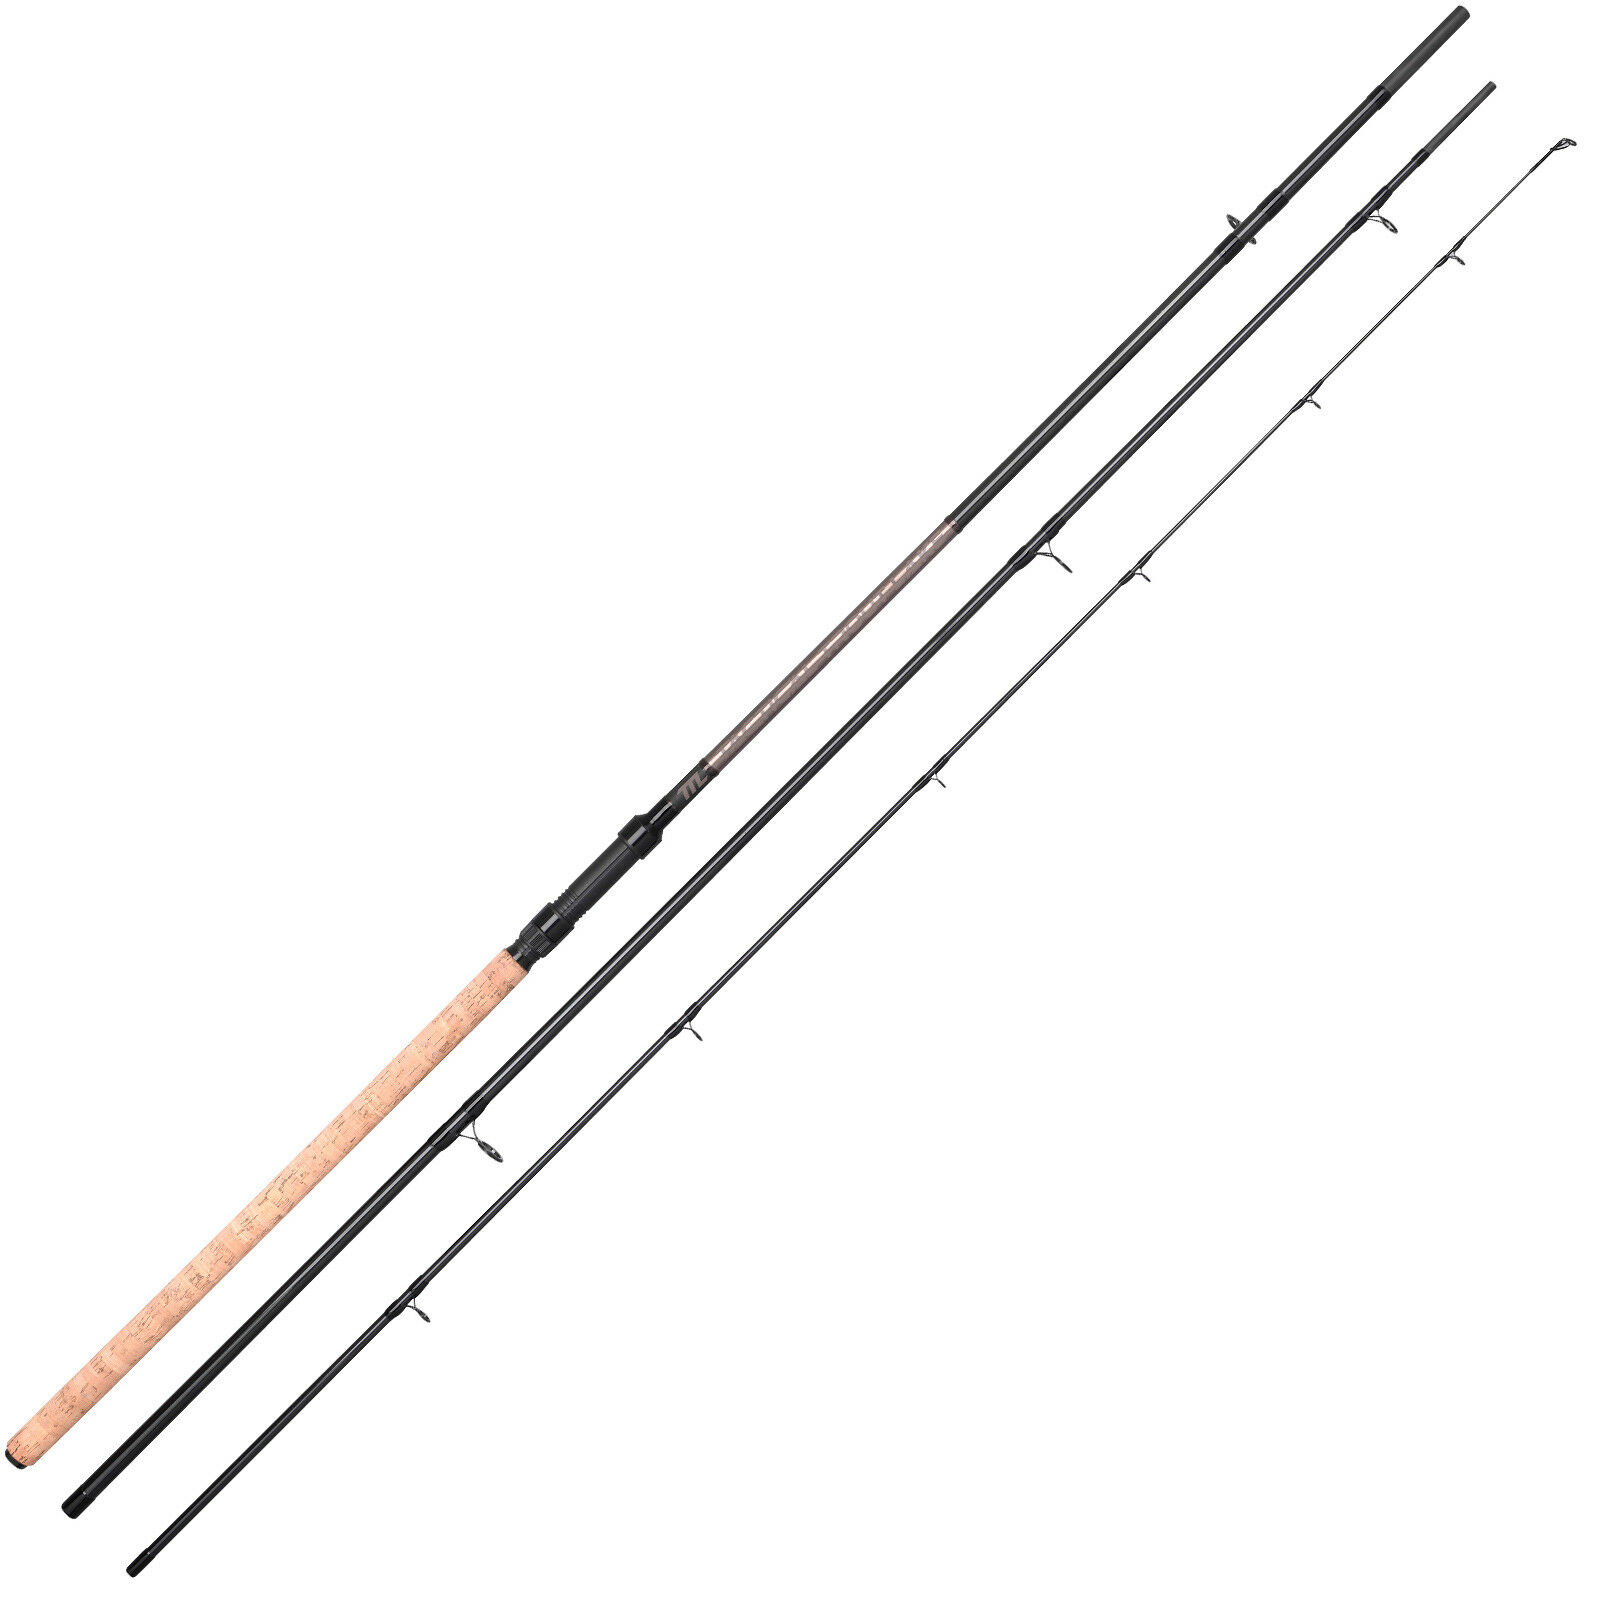 Spro Forellenrute Forellensee Rute angeln - Tactical Trout Lake 3,30m 5-40g